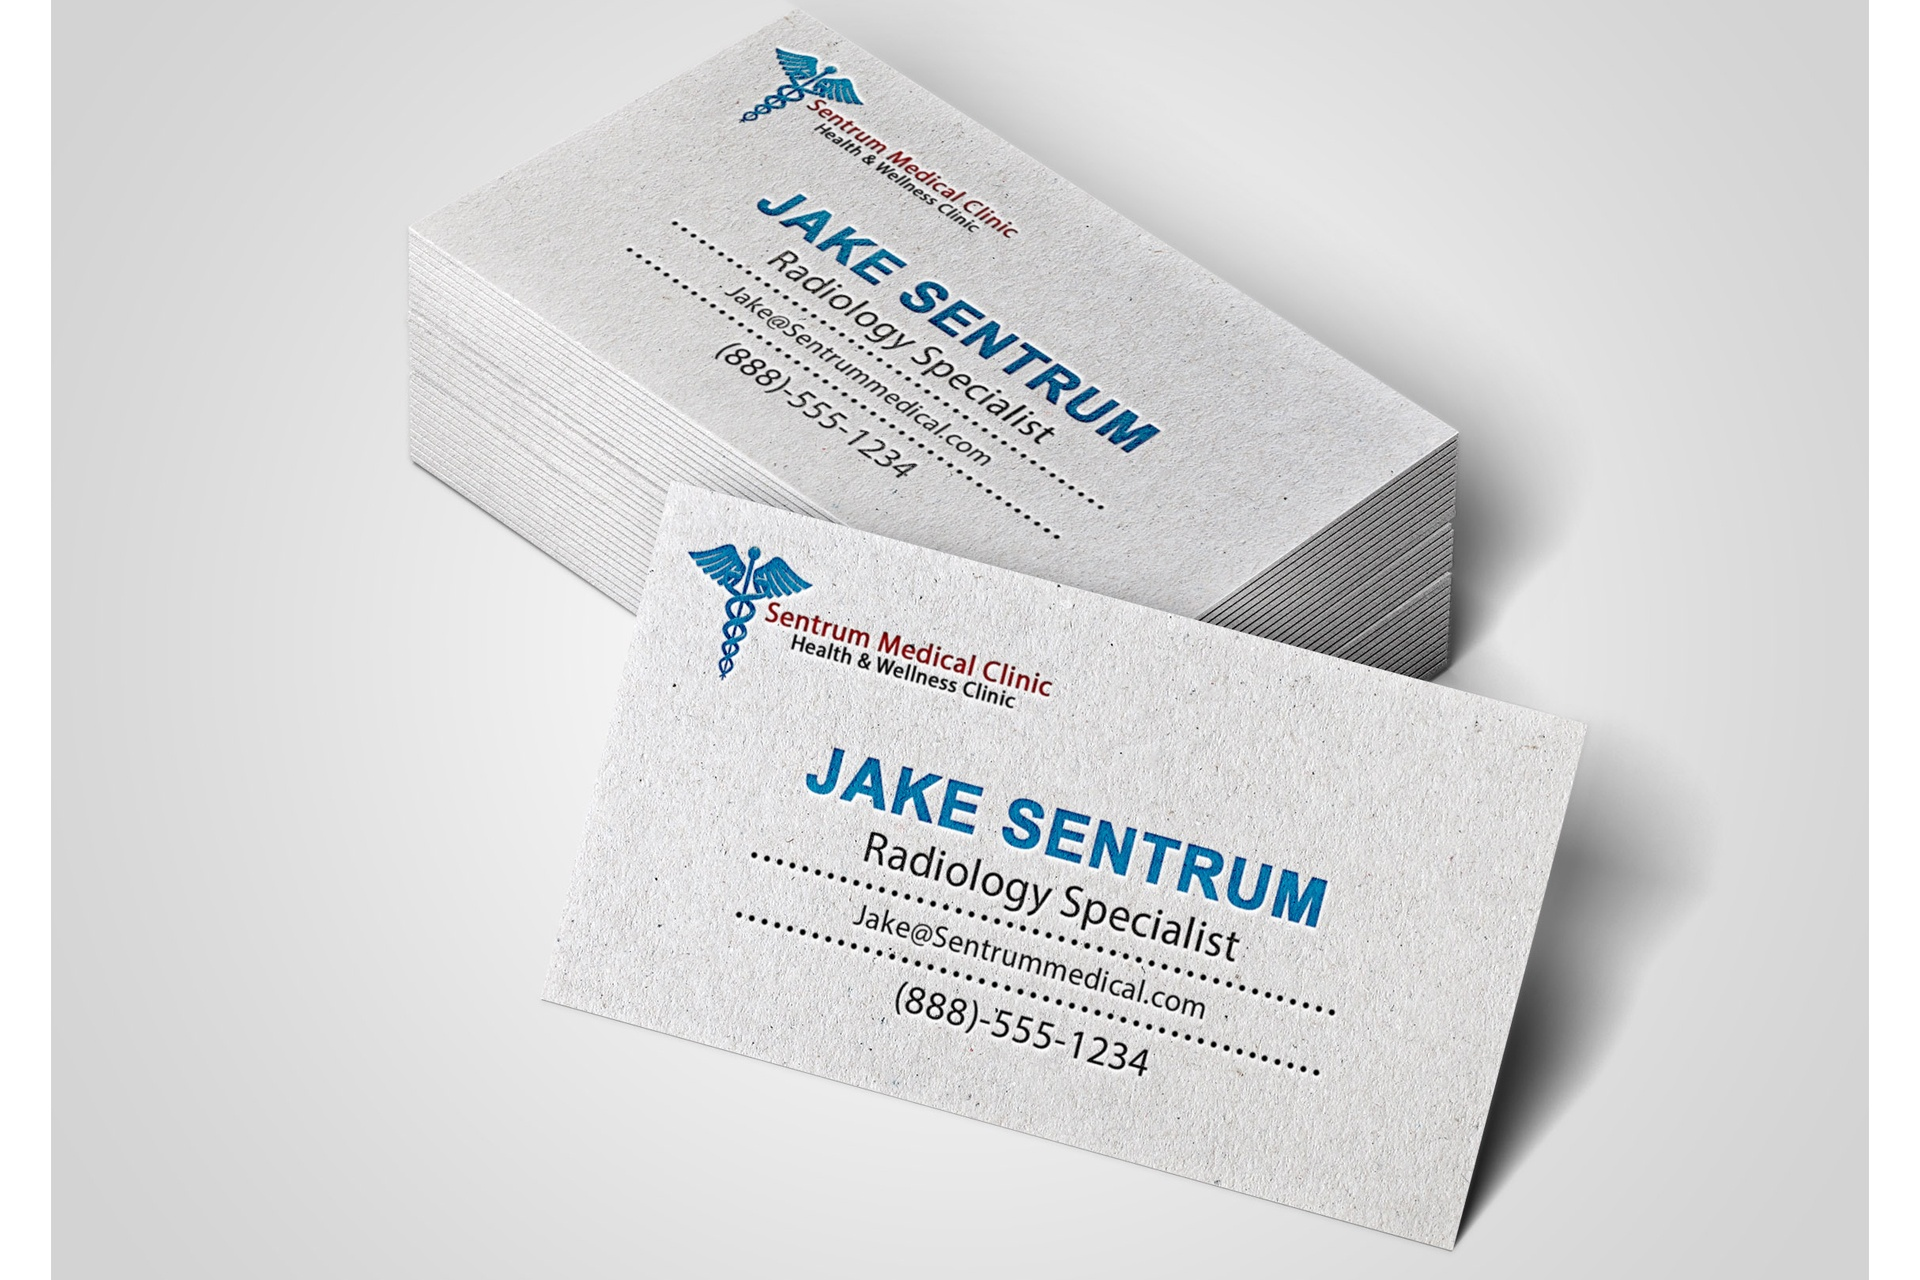 38312ad6 Business cards are relatively inexpensive, making them a cost-effective  marketing tool for small businesses on a tight budget.